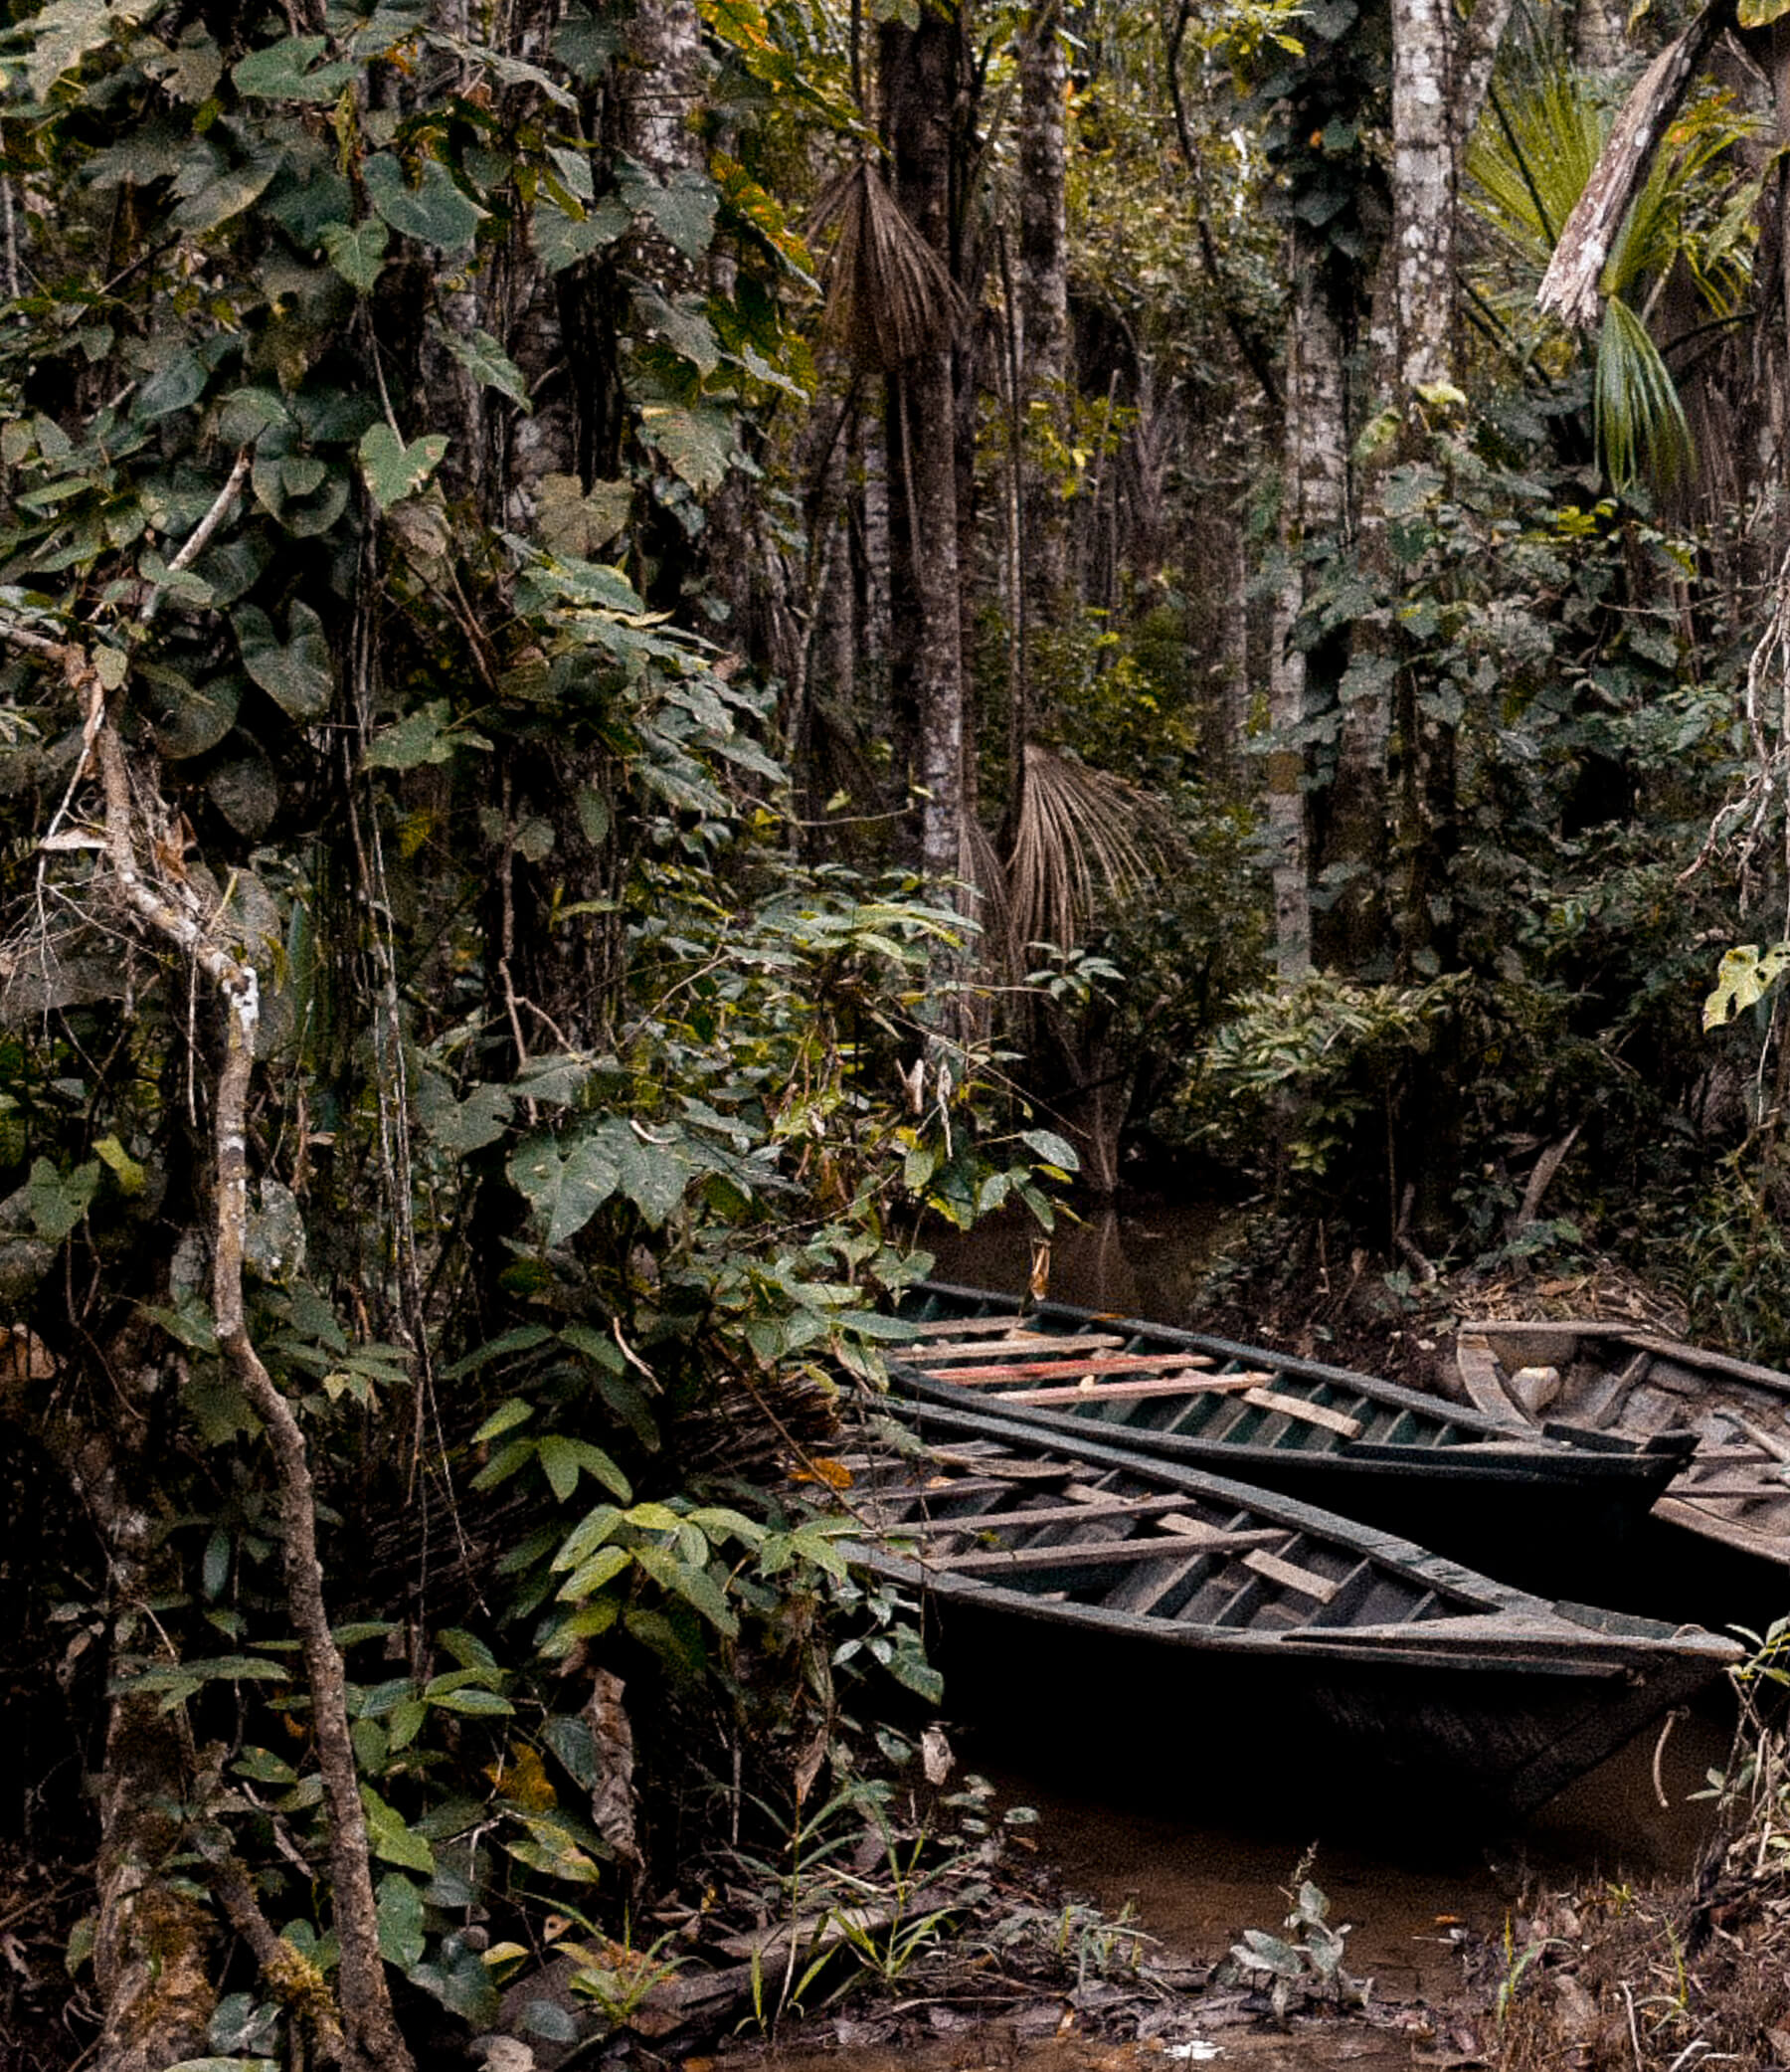 2 dark green canoes surrounded by luscious forest deep in the Amazon